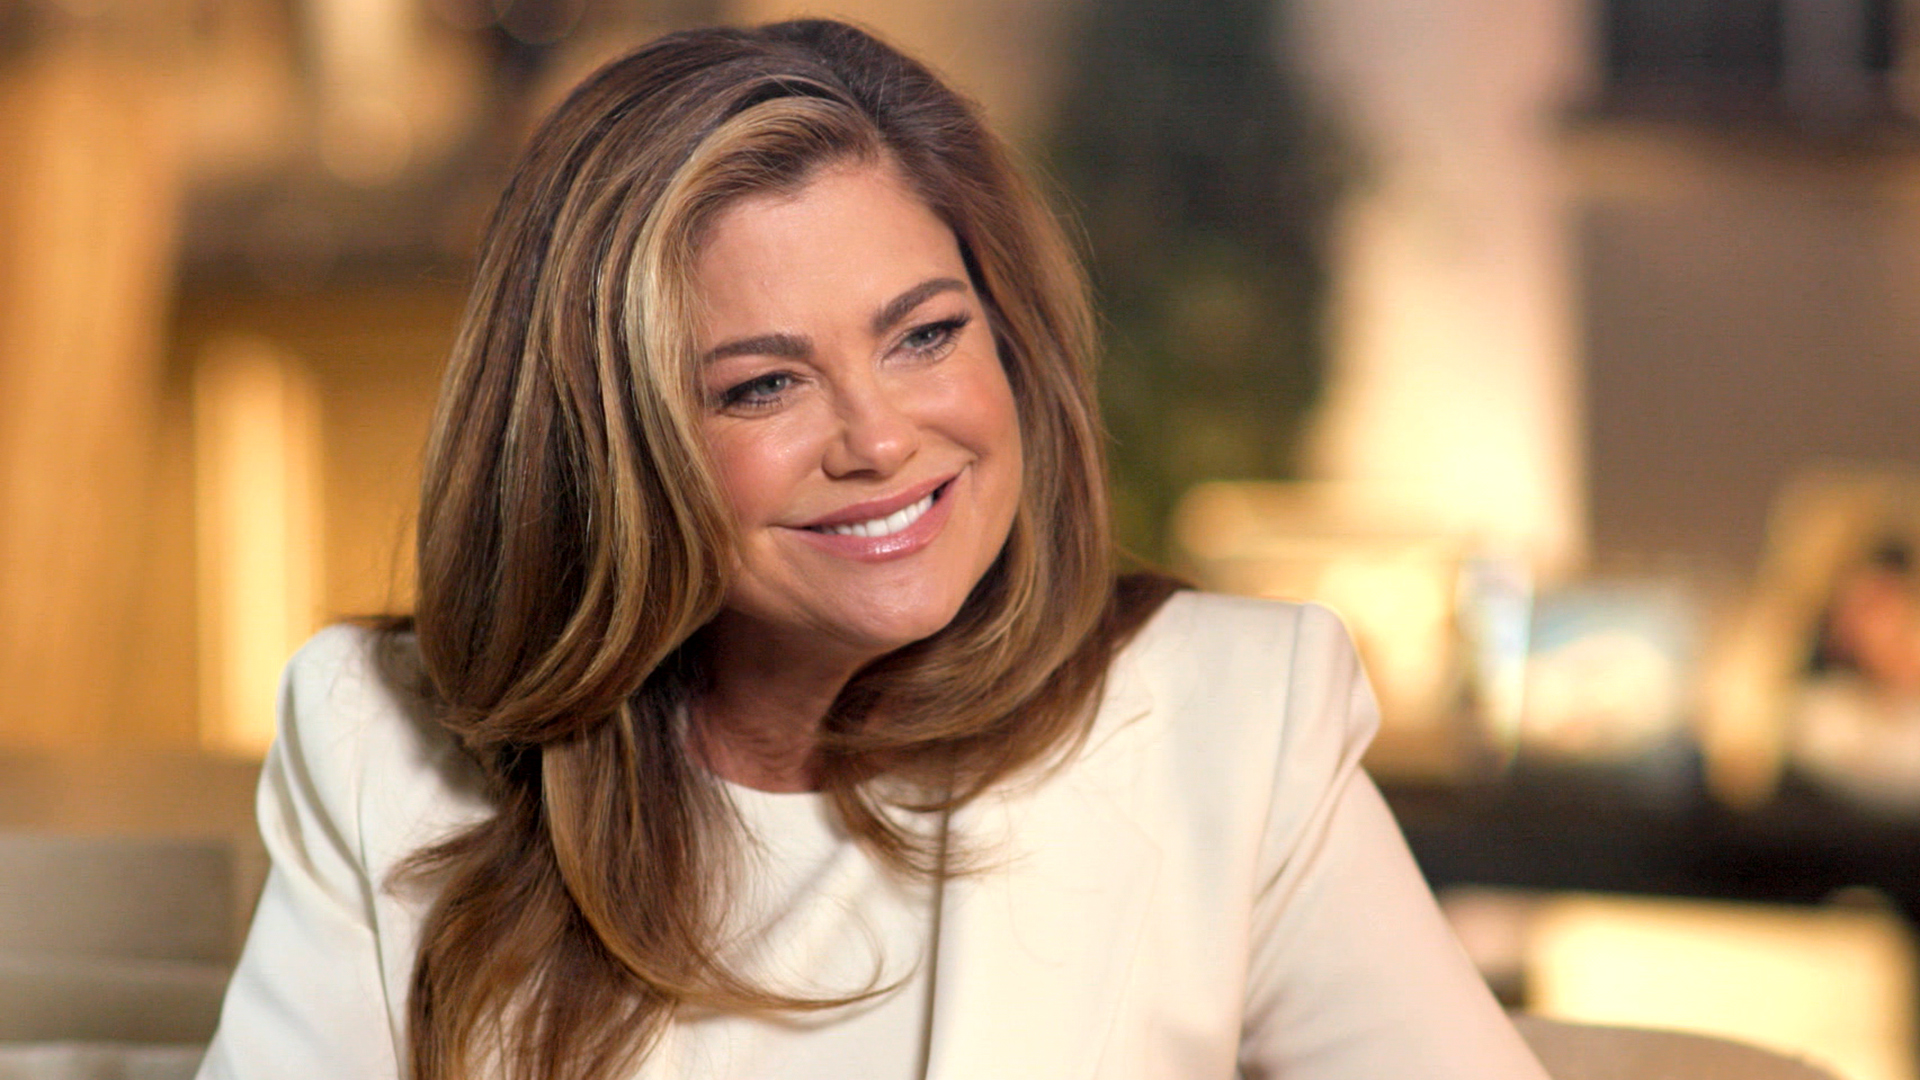 Pictures Kathy Ireland nudes (61 photo), Tits, Cleavage, Feet, swimsuit 2020